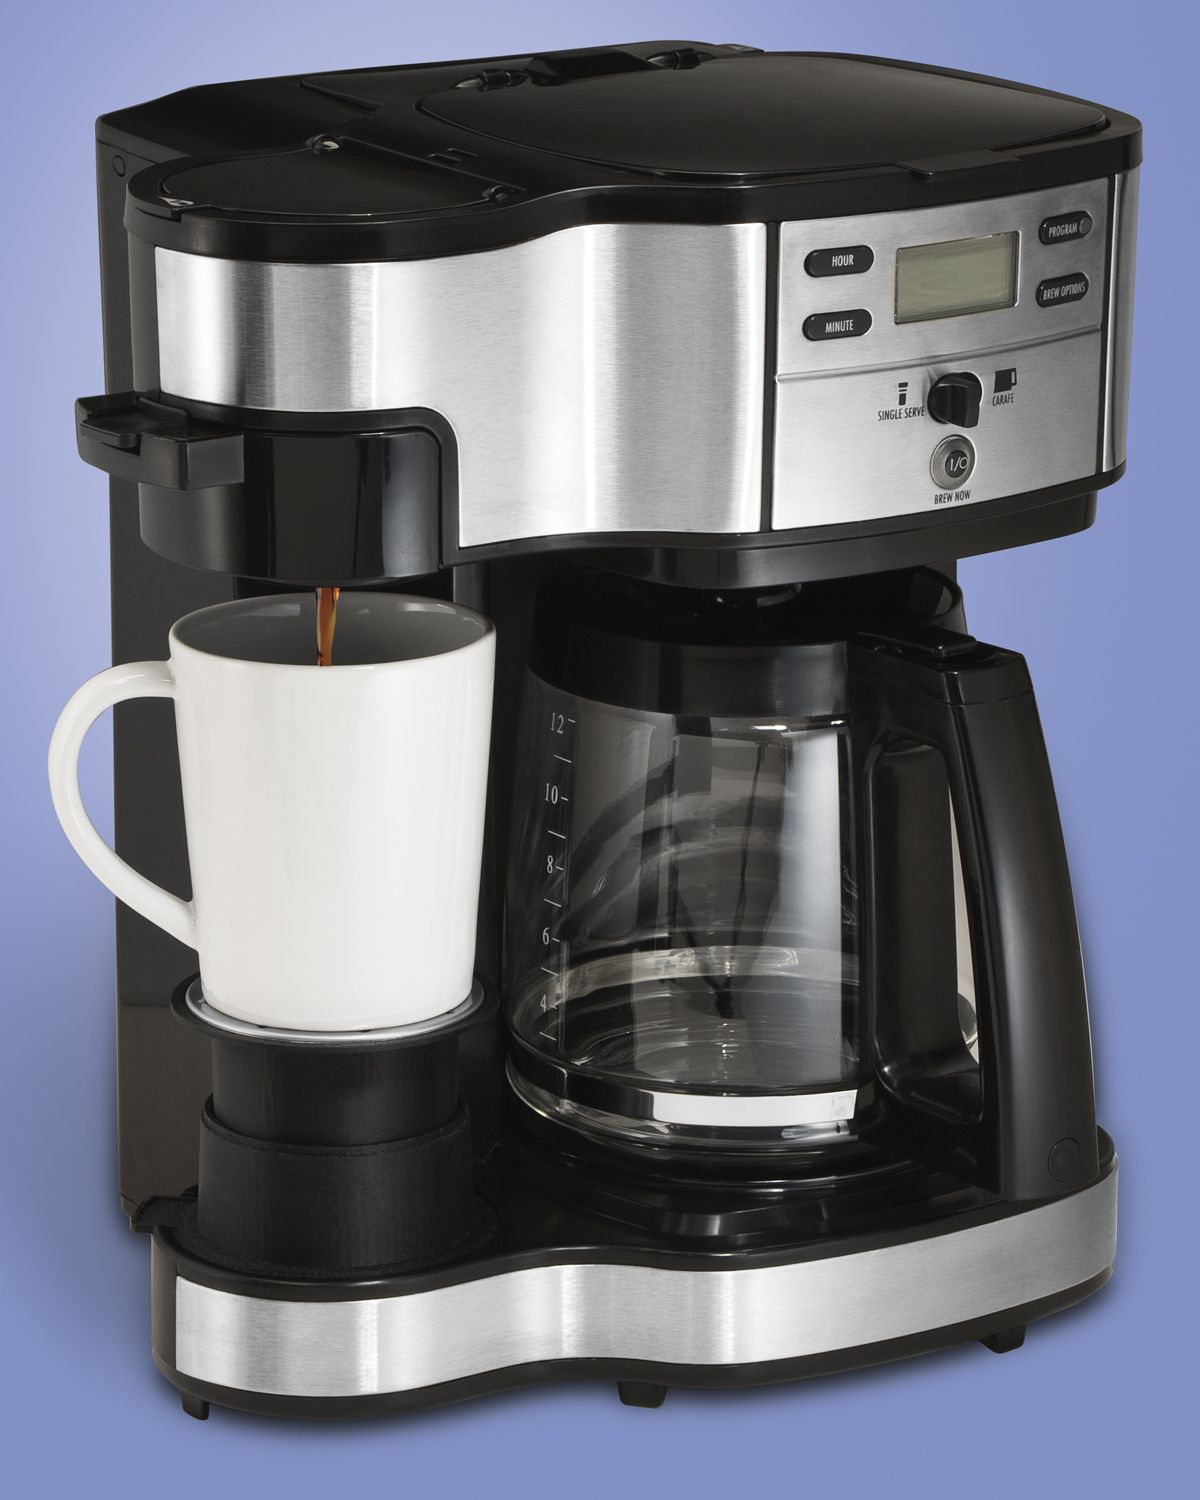 Hamilton Beach Hamilton Beach® The Scoop 2-Way Brewer Coffemaker